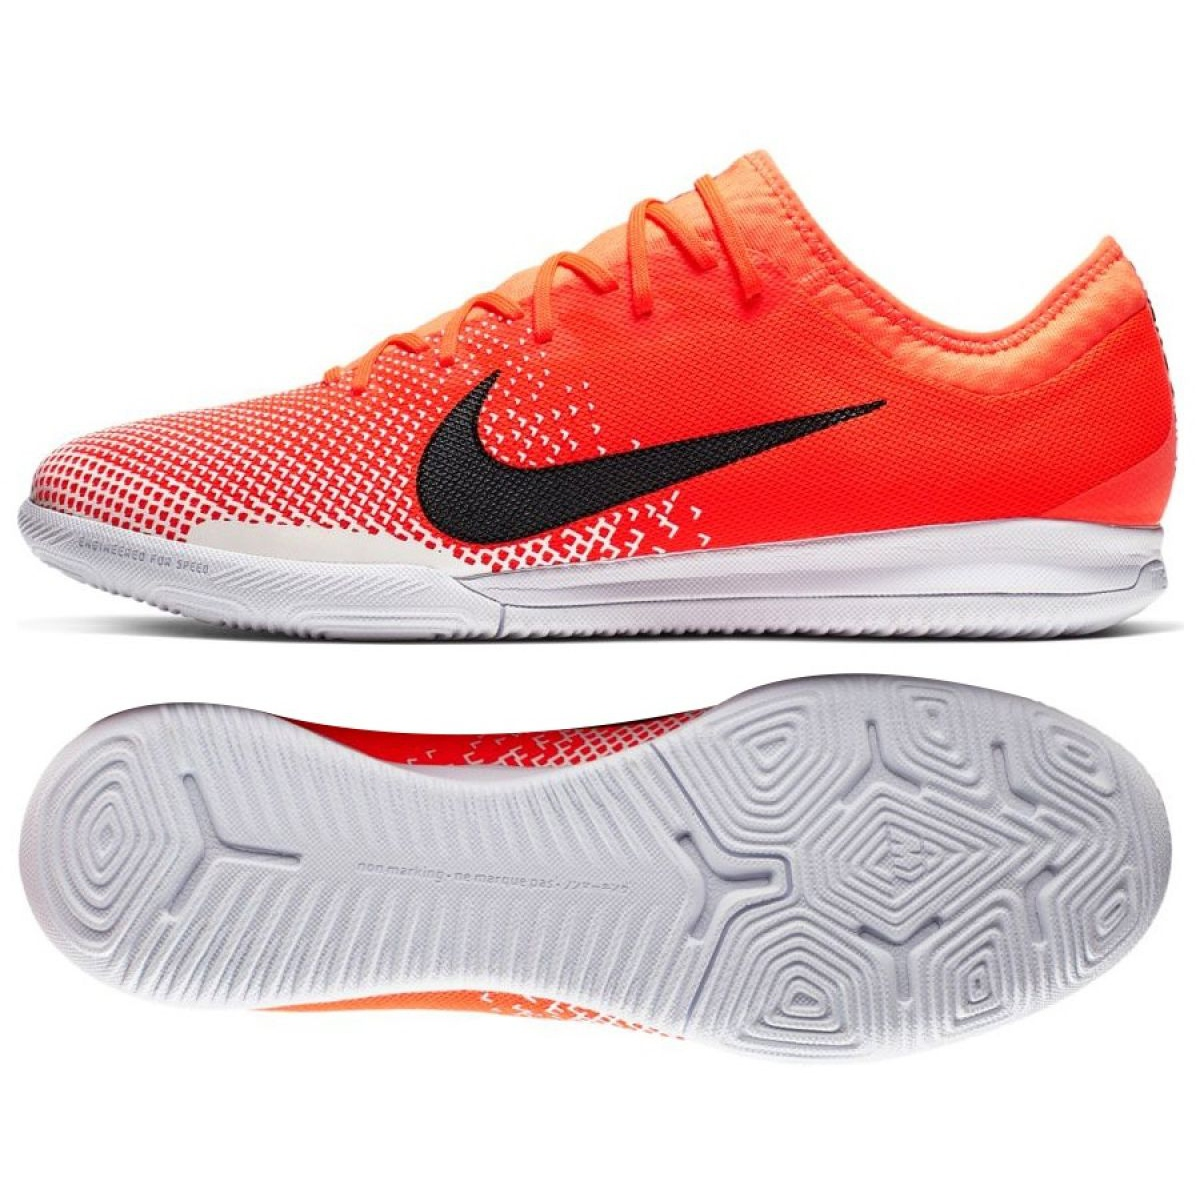 competitive price 0a83b dcf12 Indoor shoes Nike Mercurial Vapor 12 Pro Ic M AH7387-801